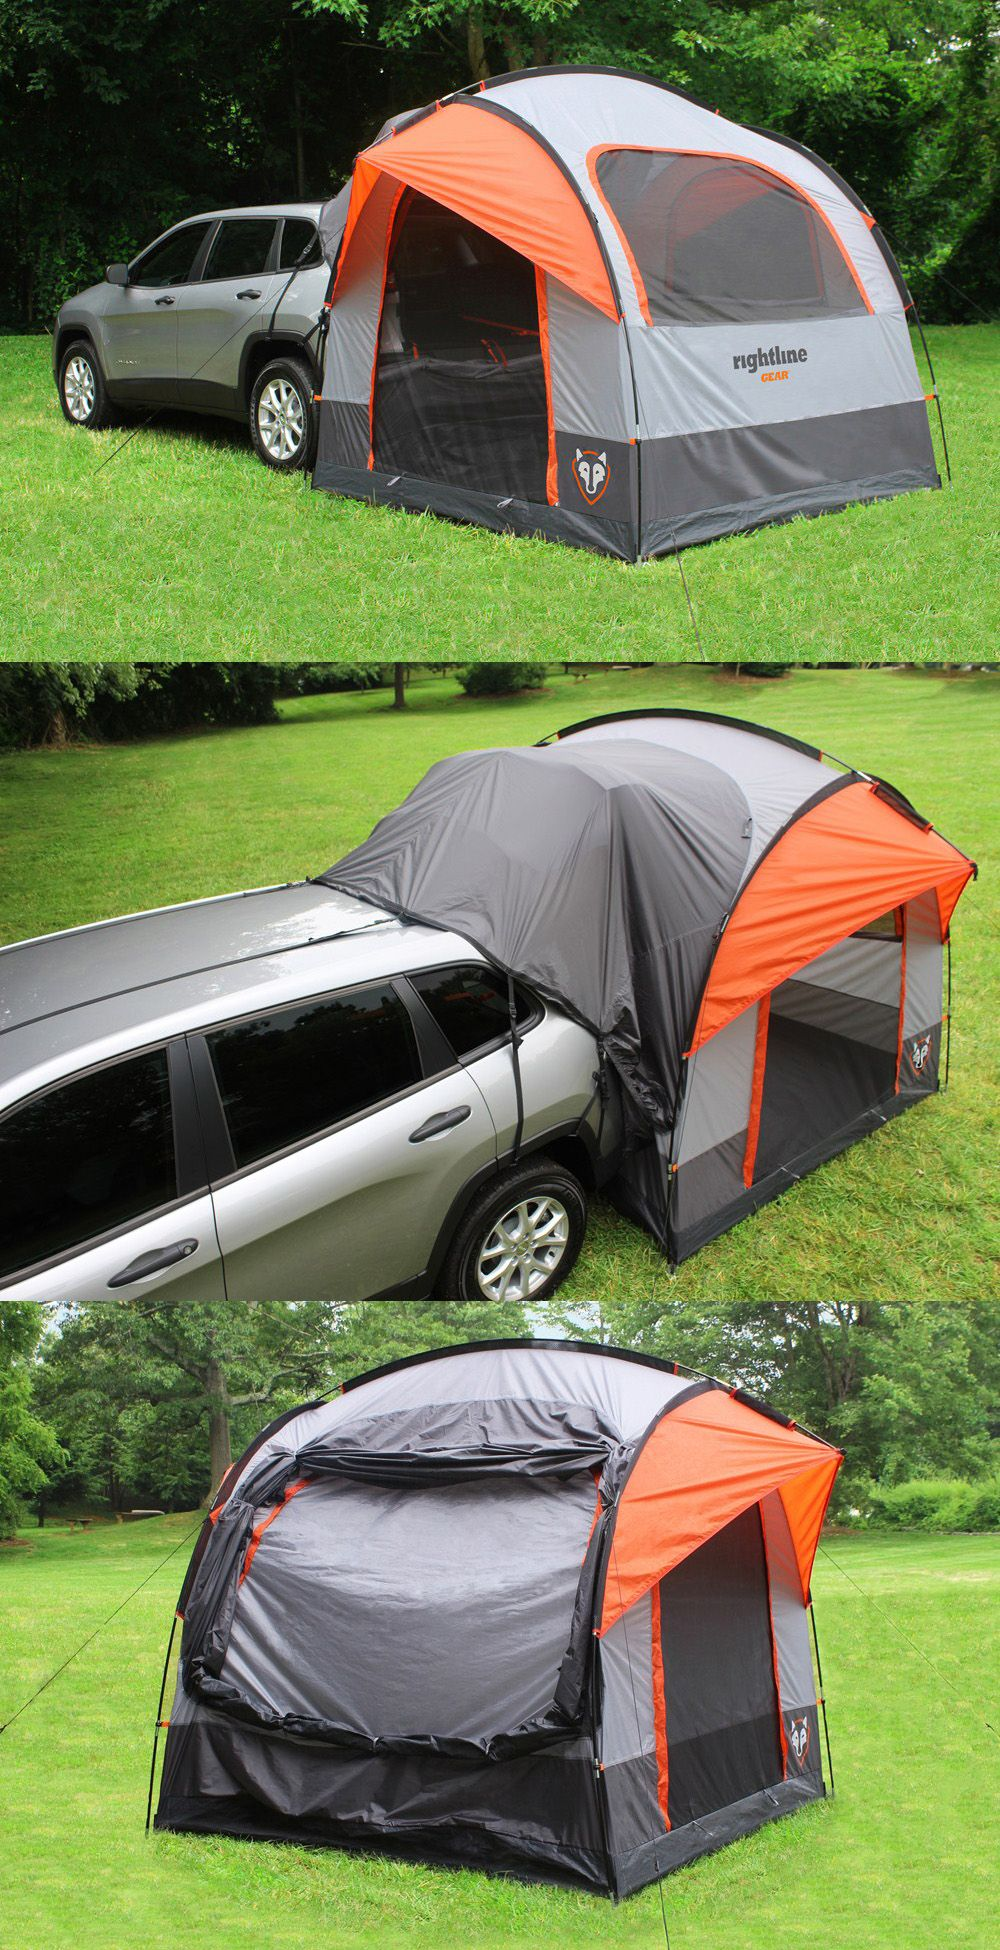 For Efficient Camping This Rightline Suv Tent Is The Economical